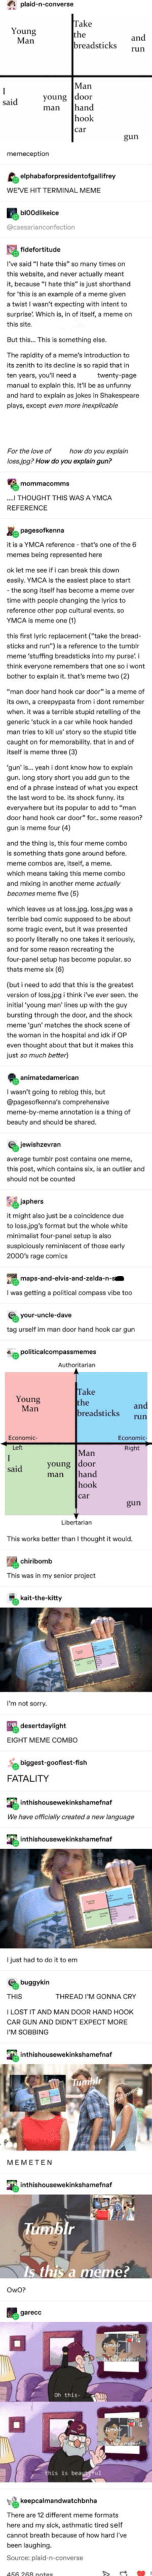 """Bad, Funny, and Love: plaid-n-converse  Take  Young  the  and  Man  breadsticks  run  Man  young door  hand  hook  said  man  car  gun  memeception  elphabaforpresidentofgallifrey  WE'VE HIT TERMINAL MEME  blo0dlikeice  @caesarianconfection  fidefortitude  I've said """"I hate this"""" so many times on  this website, and never actually meant  it, because """"I hate this"""" is just shorthand  for 'this is an example of a meme given  a twist I wasn't expecting with intent to  surprise: Which is, in of itself, a meme on  this site.  But this... This is something else.  The rapidity of a meme's introduction to  its zenith to its decline is so rapid that in  ten years, you'll need a  manual to explain this. It'll be as unfunny  and hard to explain as jokes in Shakespeare  twenty-page  plays, except even more inexplicable  For the love of  how do you explain  loss.jpg? How do you explain gun?  mommacomms  ..I THOUGHT THIS WAS A YMCA  REFERENCE  pagesofkenna  it is a YMCA reference that's one of the 6  memes being represented here  ok let me see if i can break this down  easily. YMCA is the easiest place to start  the song itself has become aa meme over  time with people changing the lyrics to  reference other pop cultural events. so  YMCA is meme one (1)  this first lyric replacement (""""take the bread-  sticks and run"""") is a reference to the tumblr  meme 'stuffing breadsticks into my purse. i  think everyone remembers that one so i wont  bother to explain it. that's meme two (2)  """"man door hand hook car door"""" is a meme of  its own, a creepypasta from i dont remember  when. it was a terrible stupid retelling of the  generic 'stuck in a car while hook handed  man tries to kill us' story so the stupid title  caught on for memorability. that in and of  itself is meme three (3)  'gun' is... yeah i dont know how to explain  gun. long story short you add gun to the  end of a phrase instead of what you expect  the last word to be. its shock funny. its  everywhere but its popular to add to """"m"""